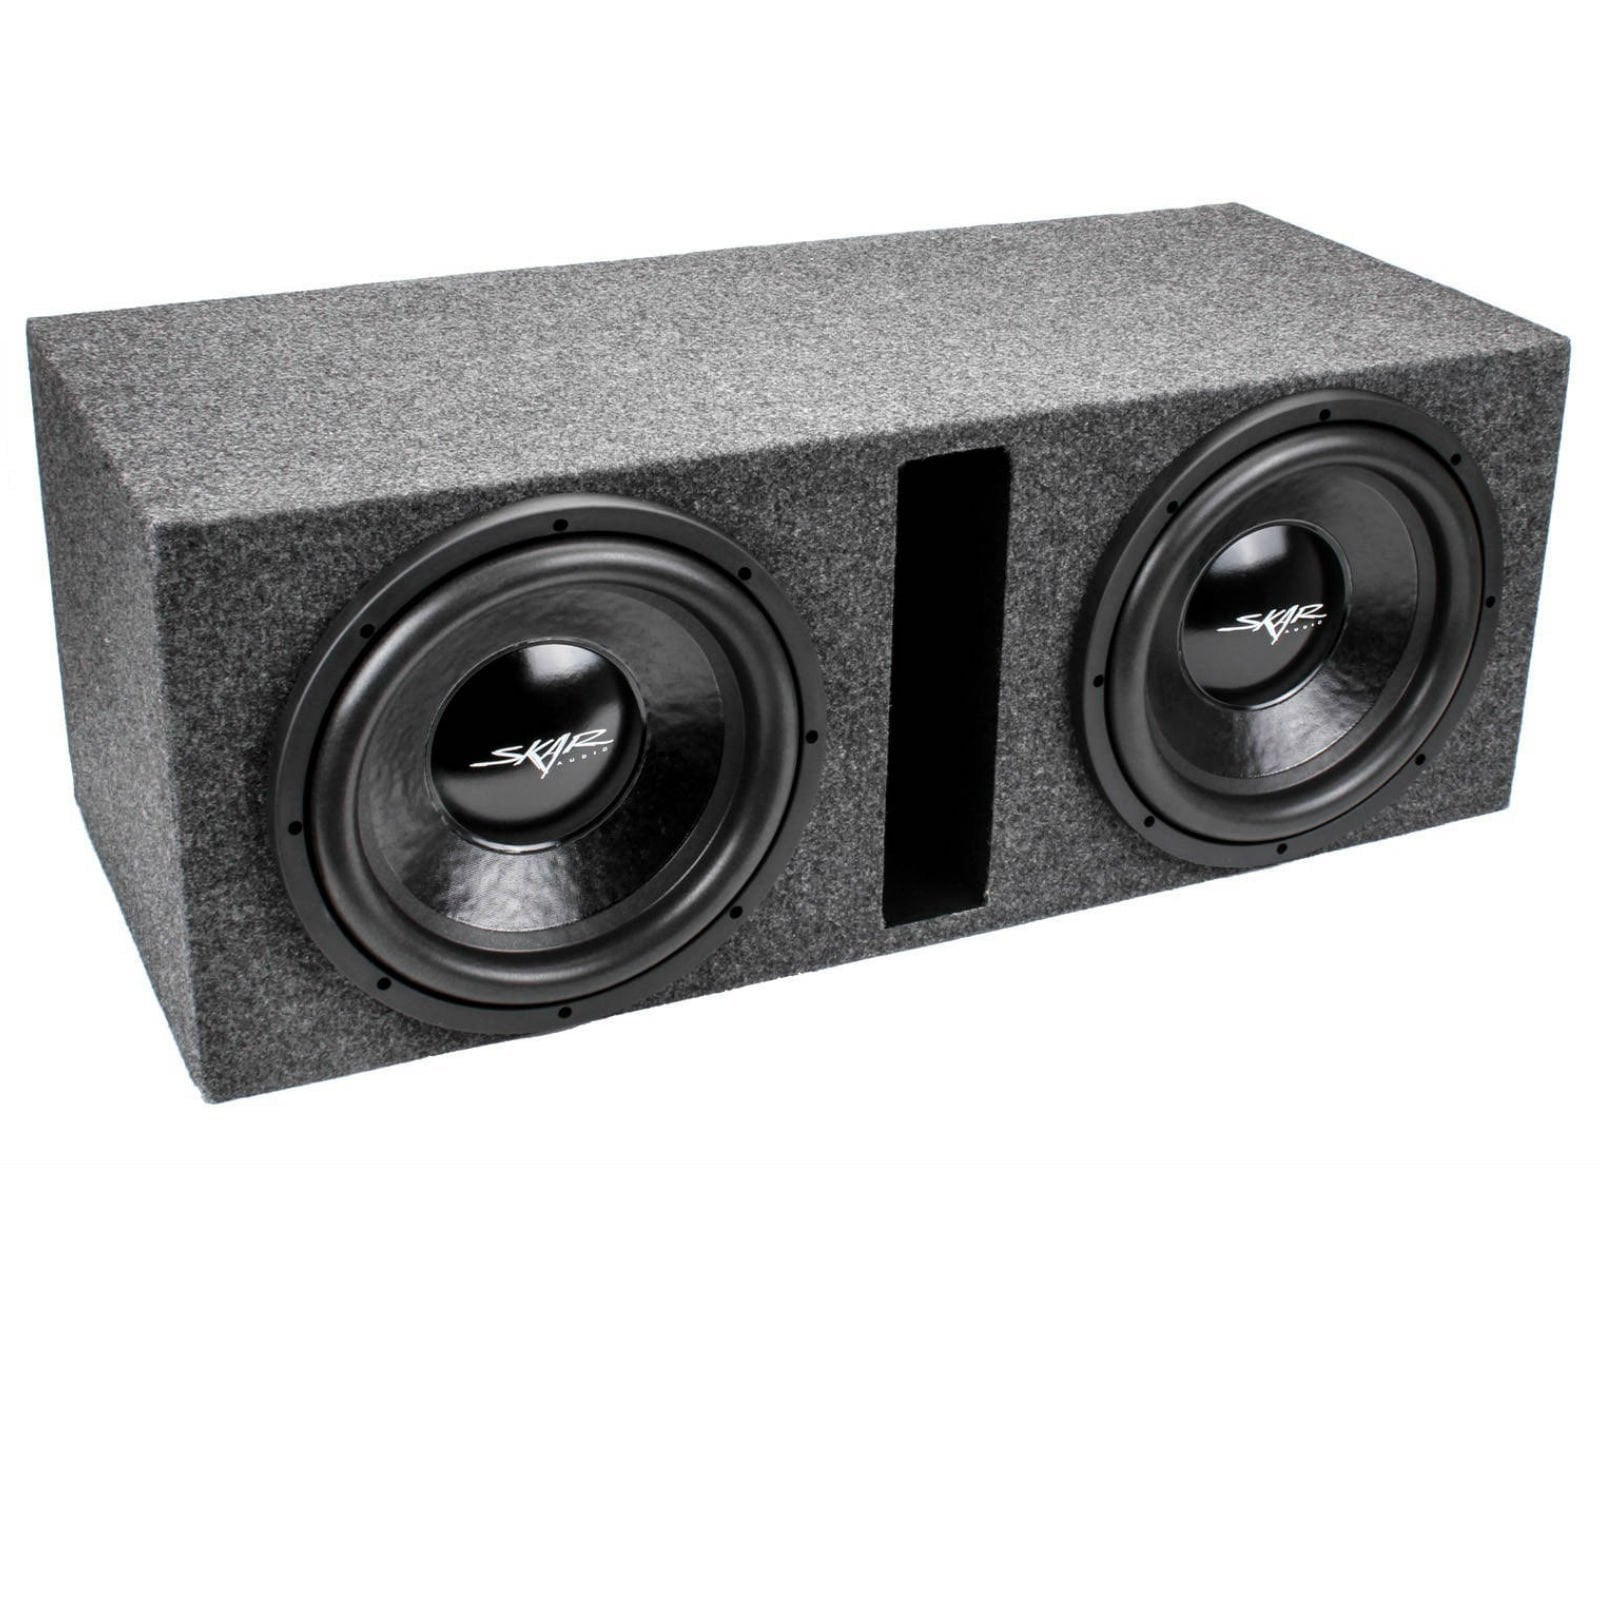 "Skar Audio IX12-2X12VENTED Dual 12"" IX Loaded Vented Subwoofer Enclosure - Angle View"